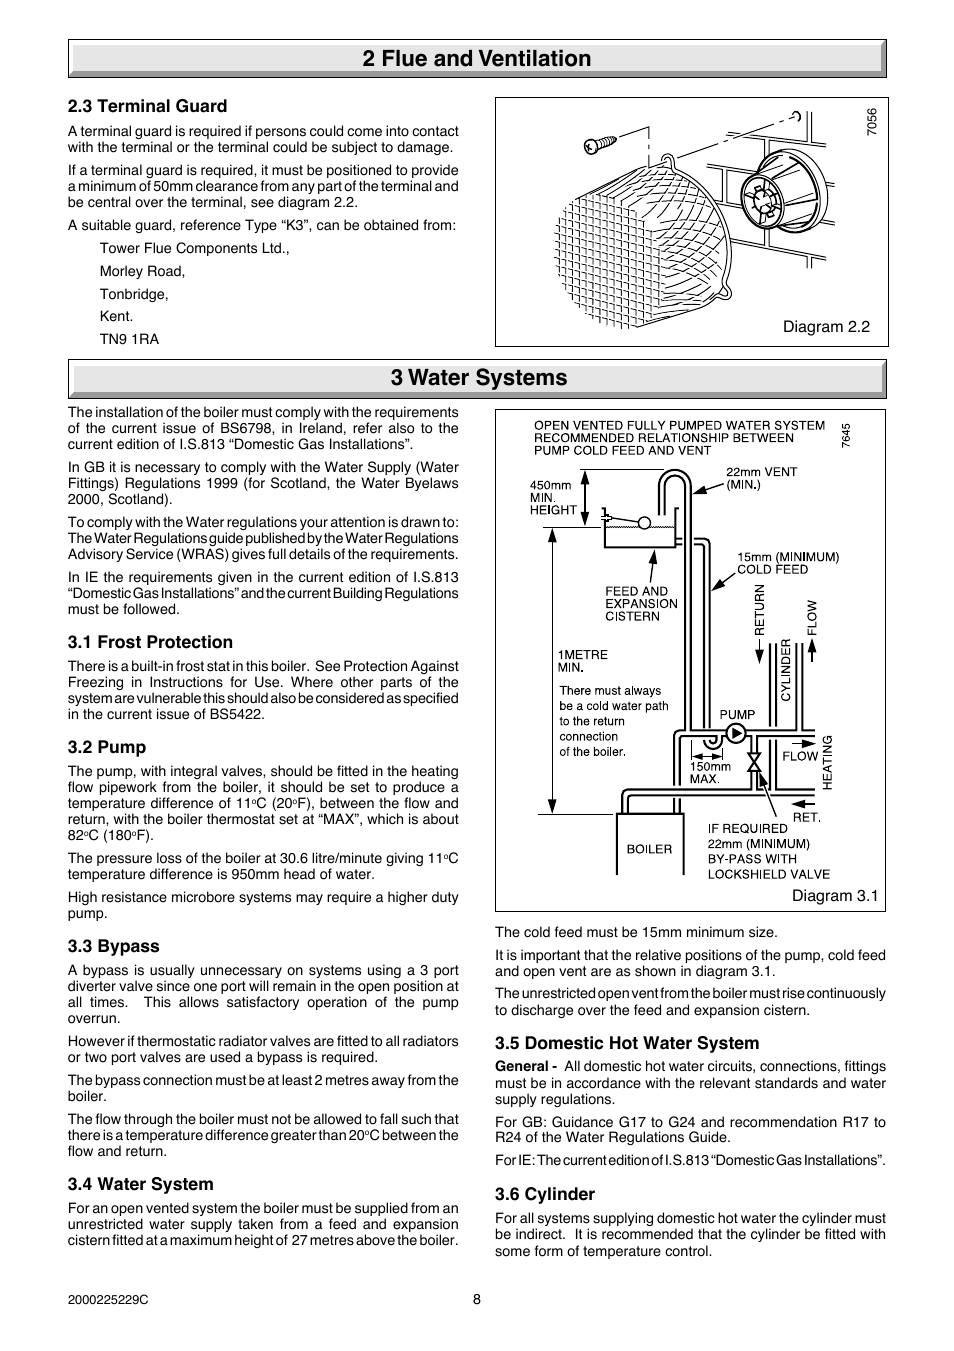 2 flue and ventilation 3 water systems | Glow-worm Micron 70FF User ...